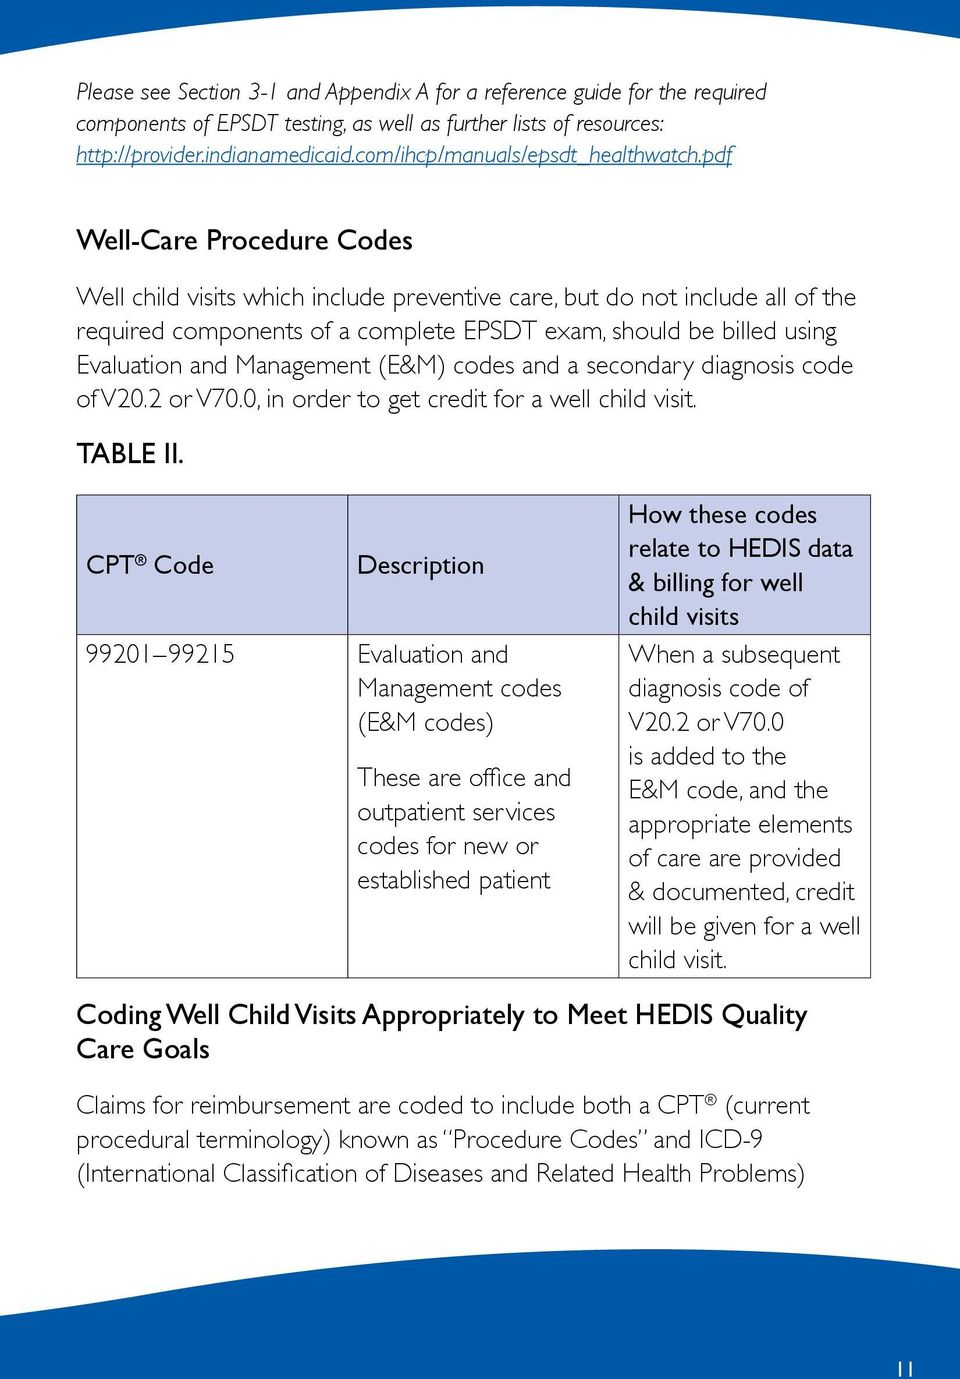 pdf Well-Care Procedure Codes Well child visits which include preventive care, but do not include all of the required components of a complete EPSDT exam, should be billed using Evaluation and